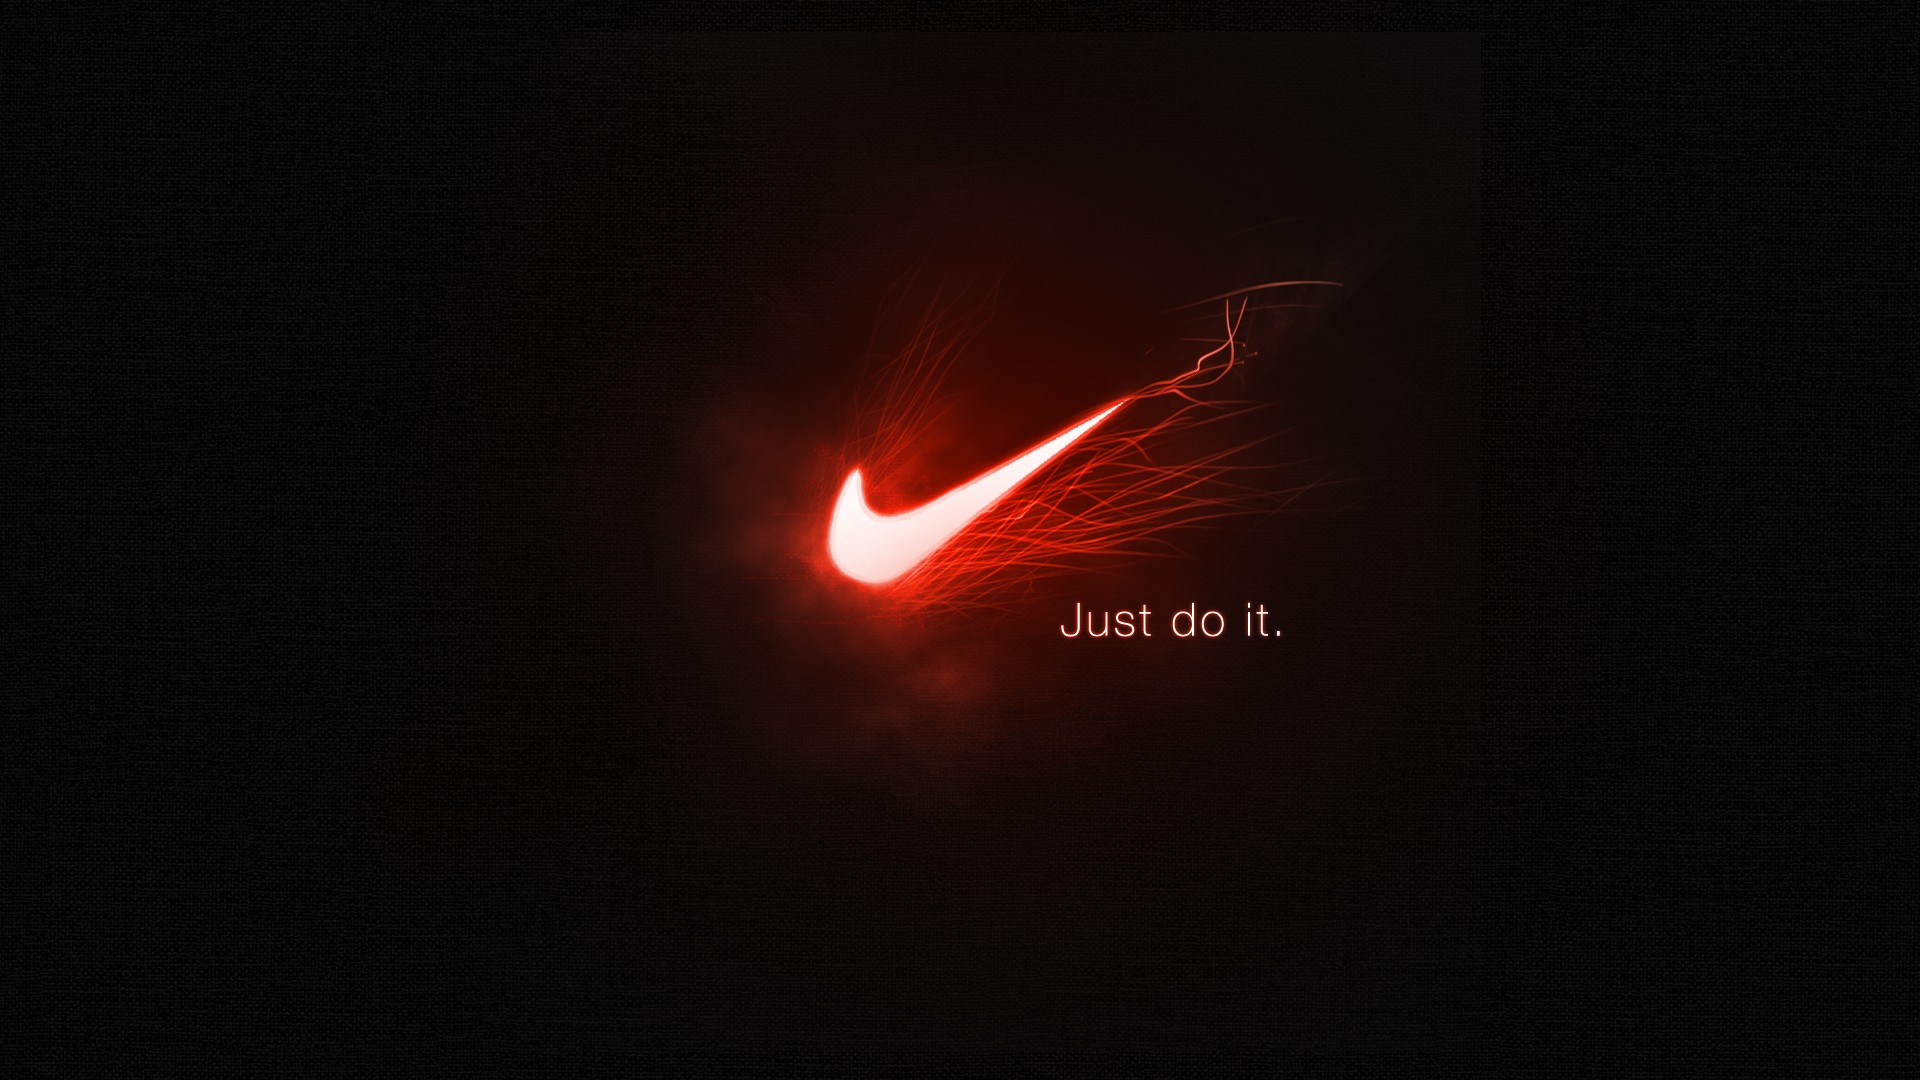 Just Do It Wallpaper 23263 1920x1080 Px  HDWallSourcecom